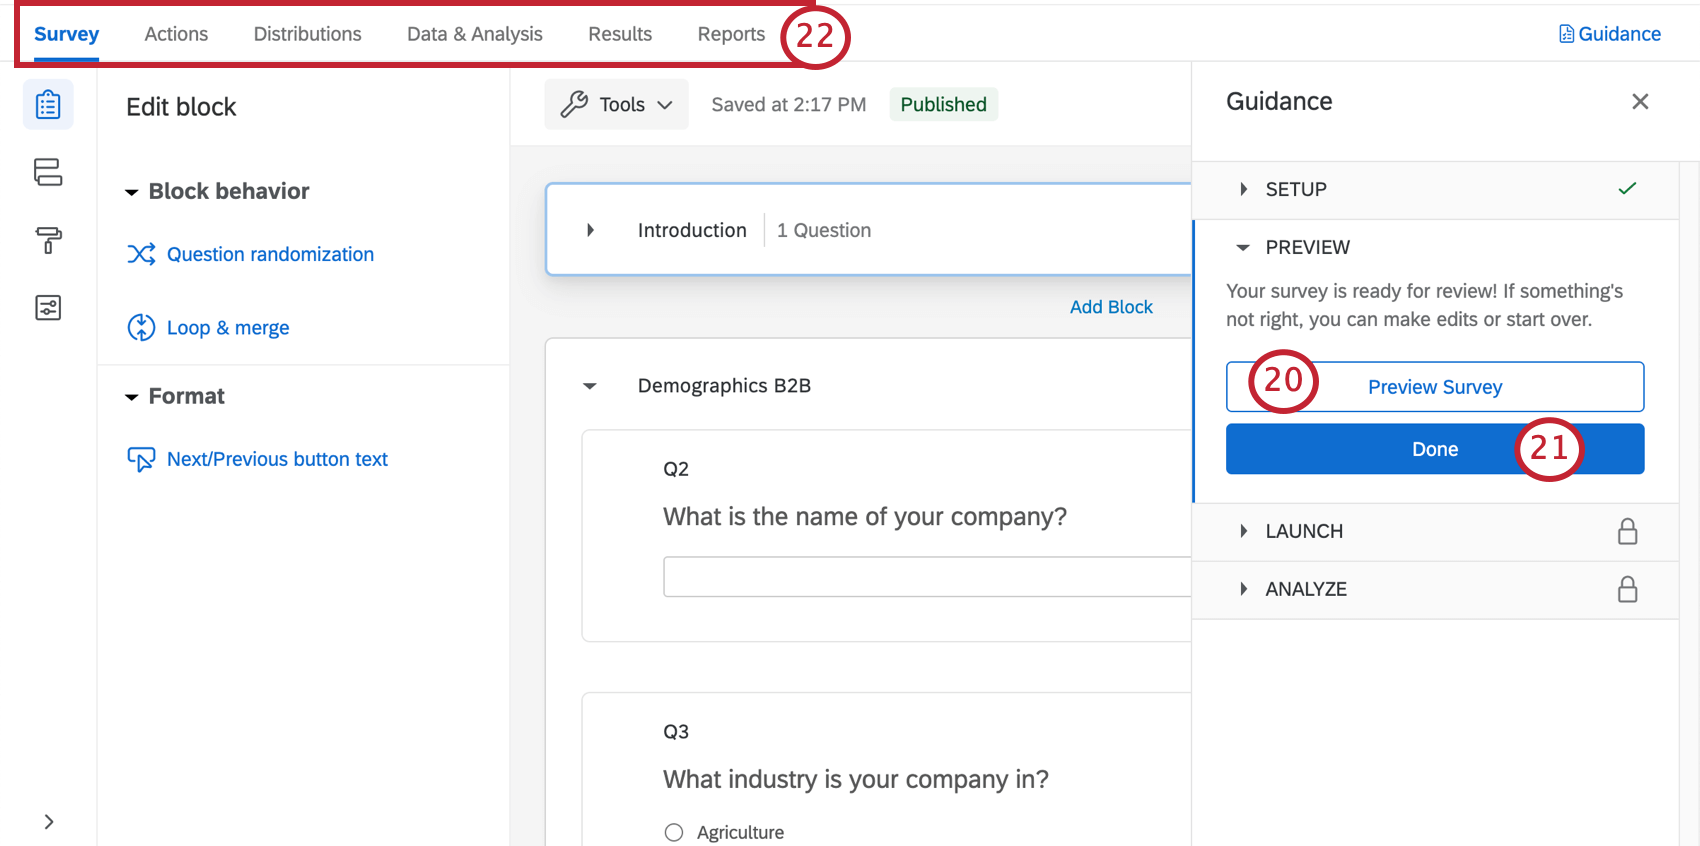 Survey builder open with a guidance sidebar to the right that takes you through key steps